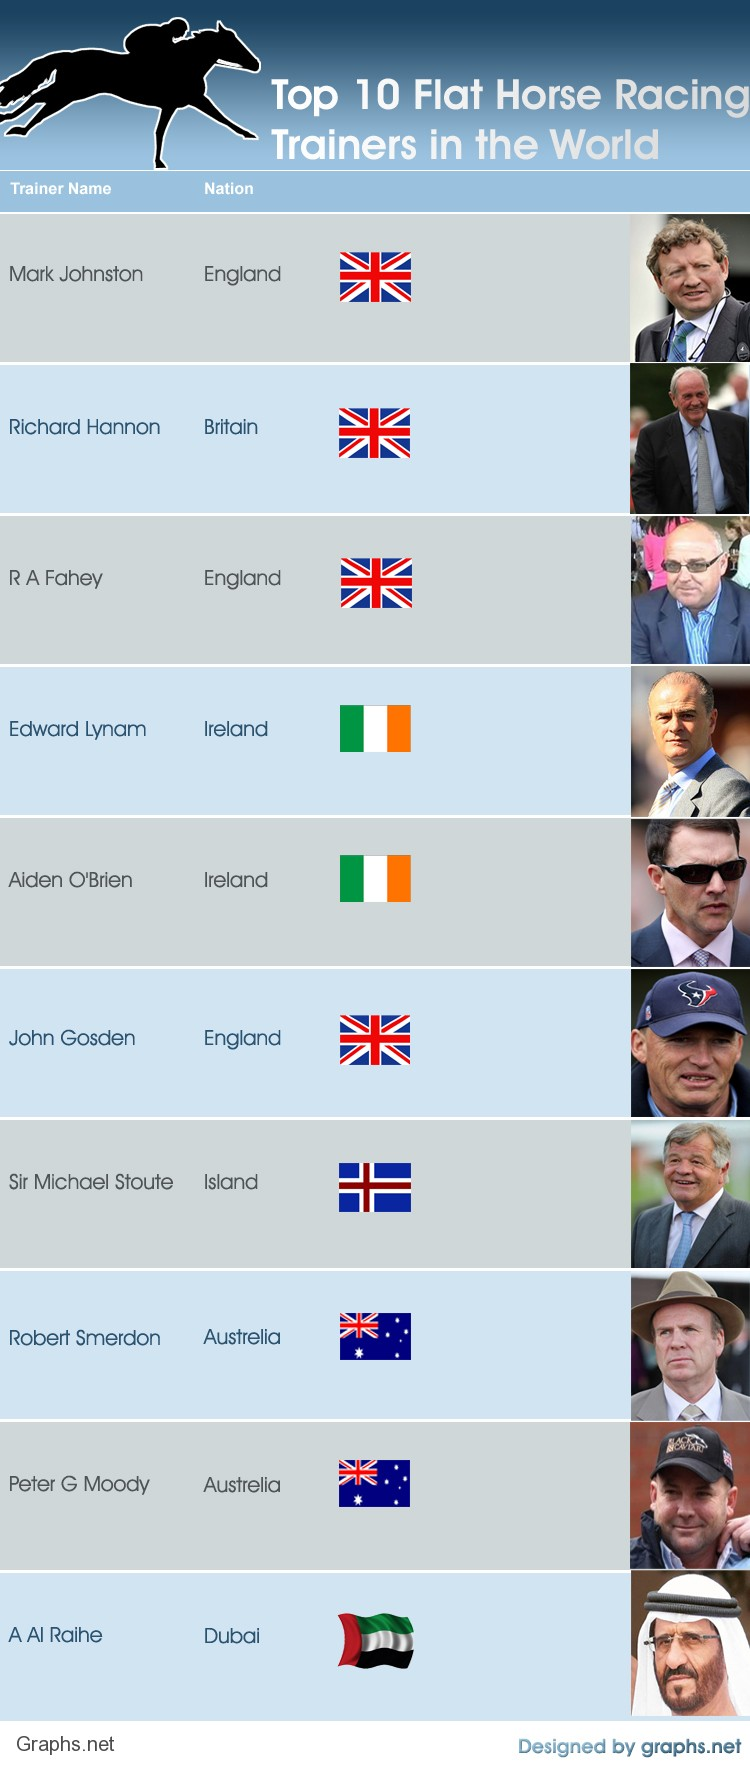 Top 10 Flat Horse Racing Trainers in the World